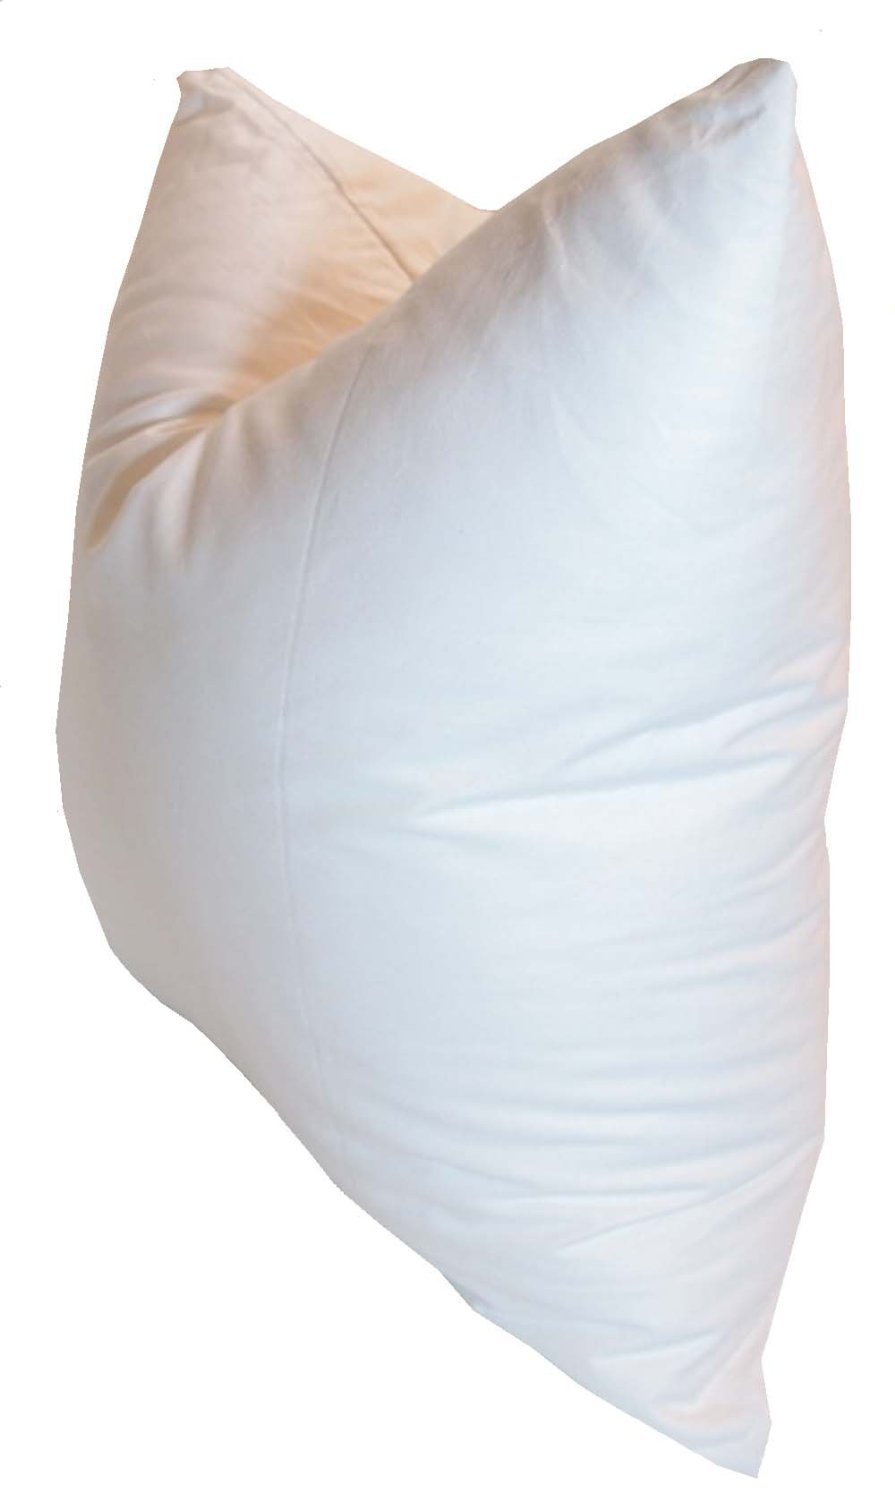 synthetic down pillow inserts